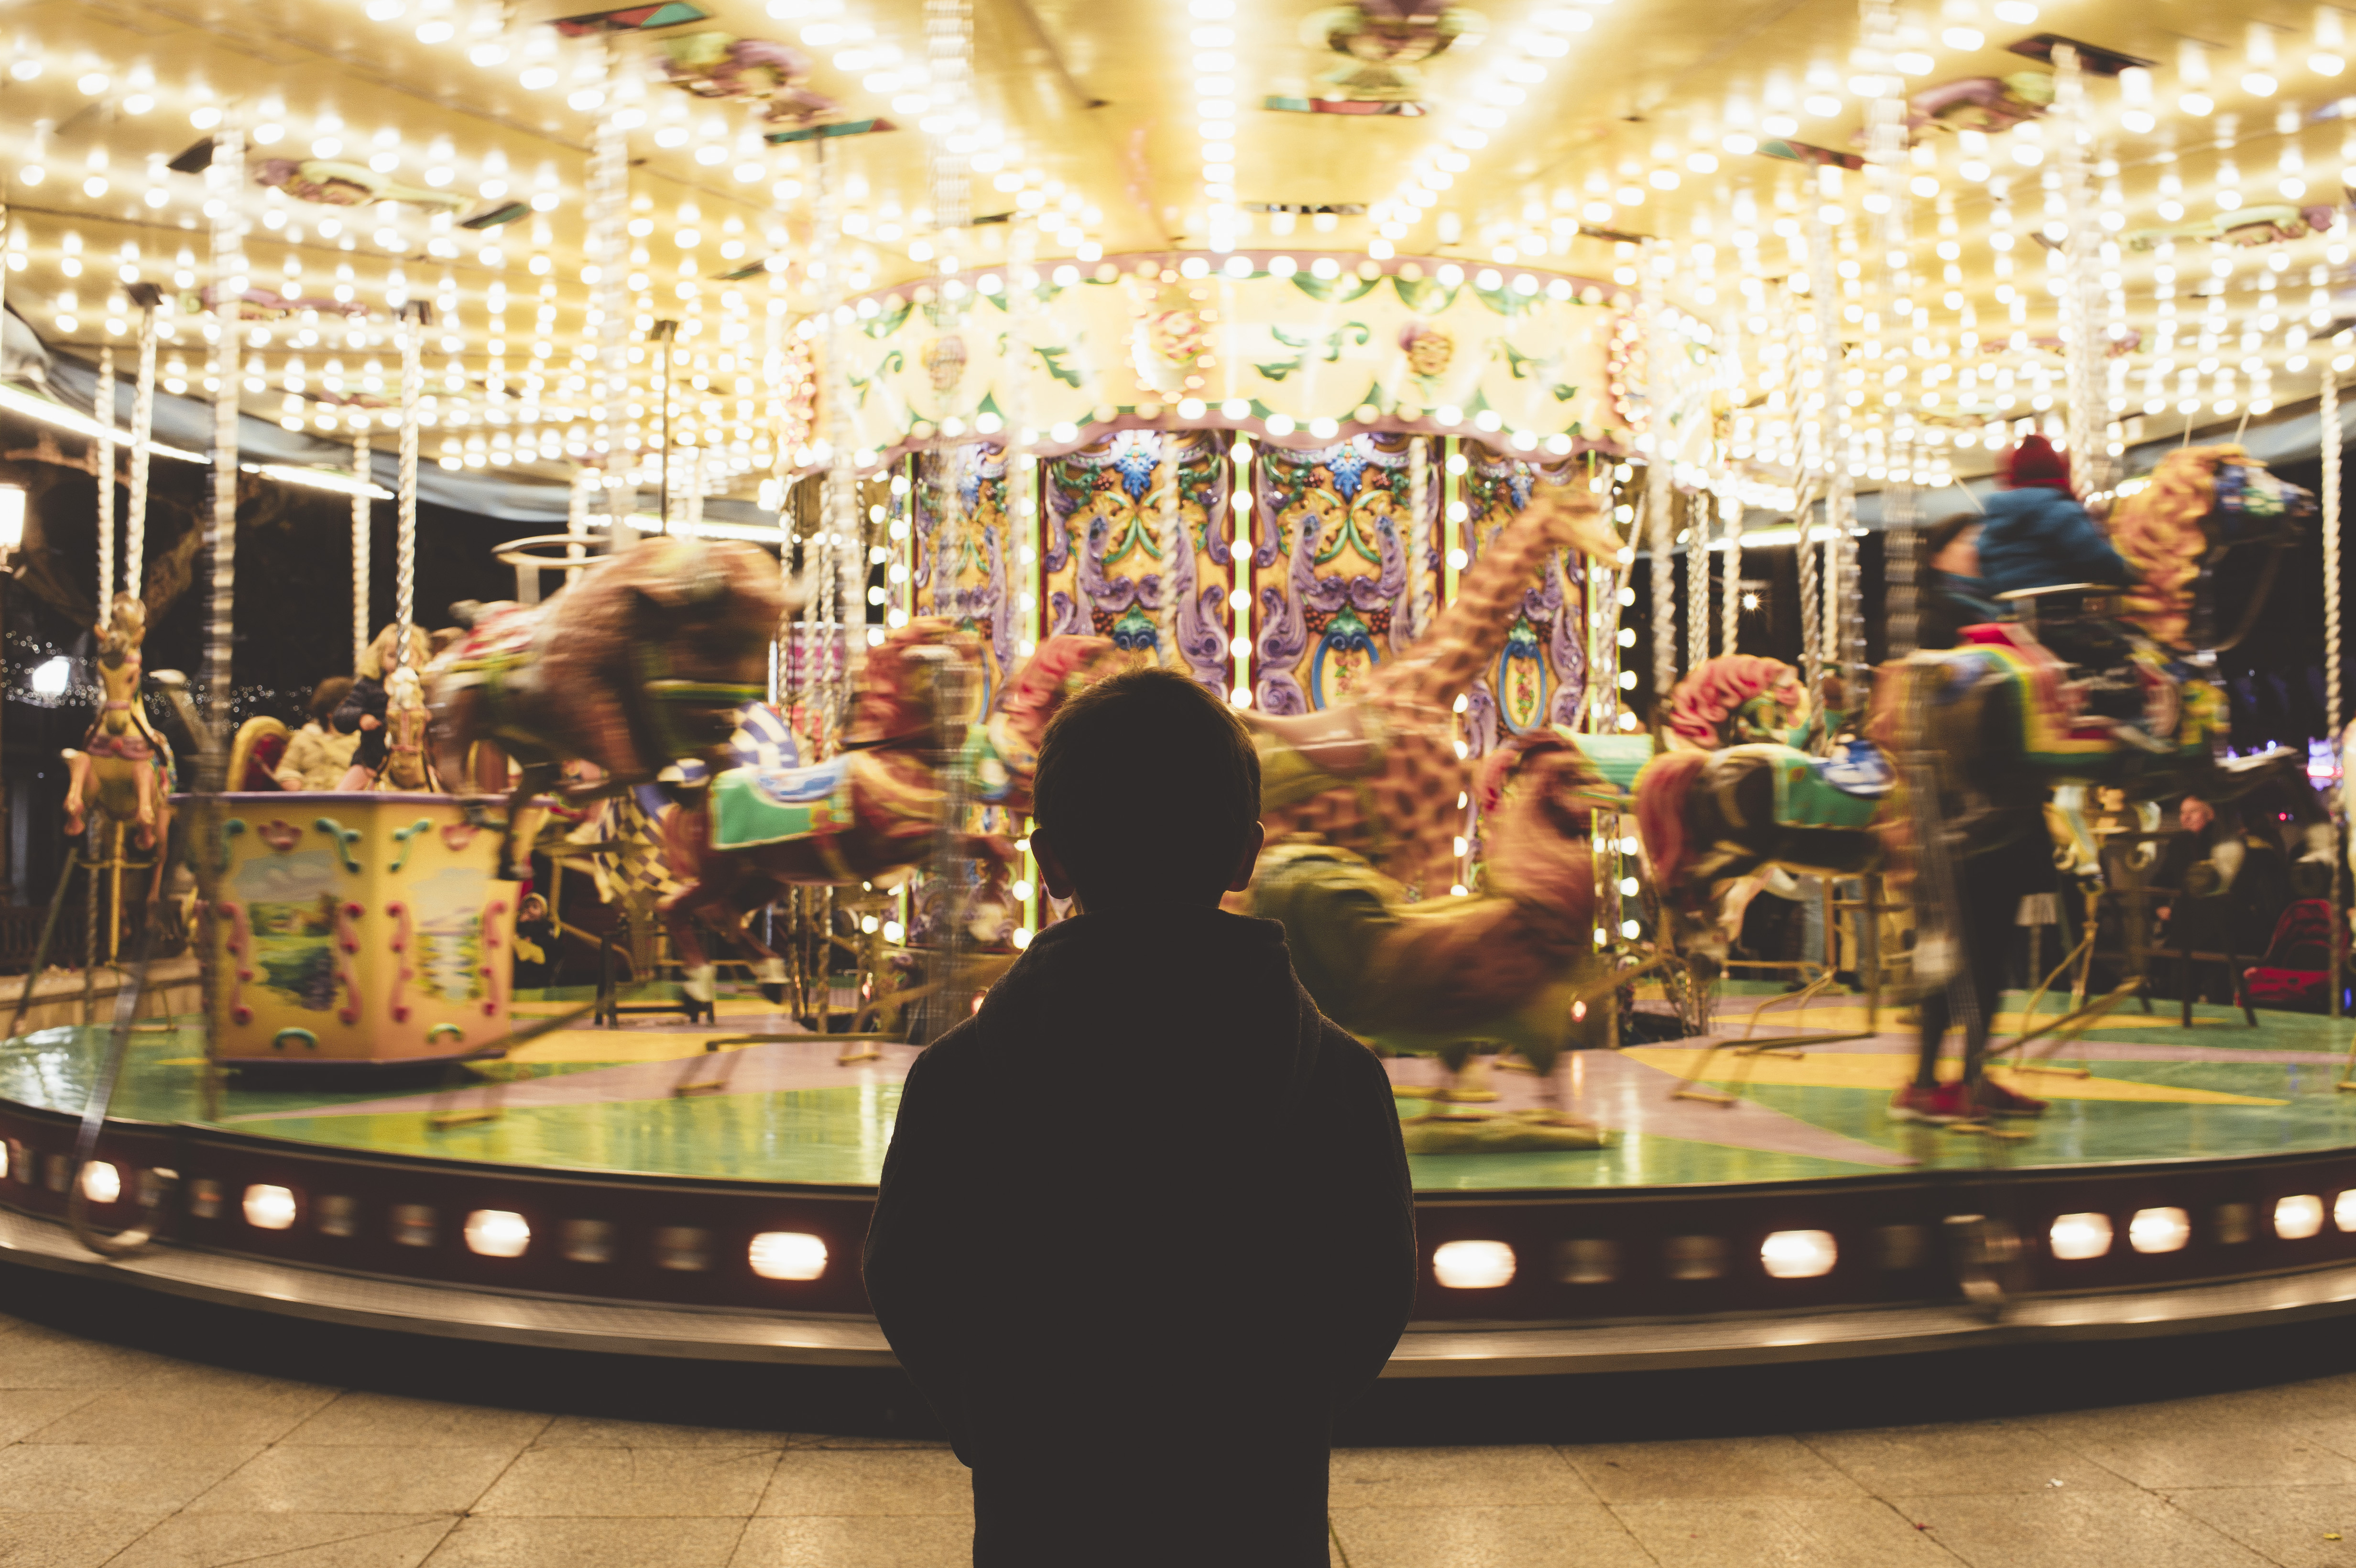 Merry-Go-Round carnival